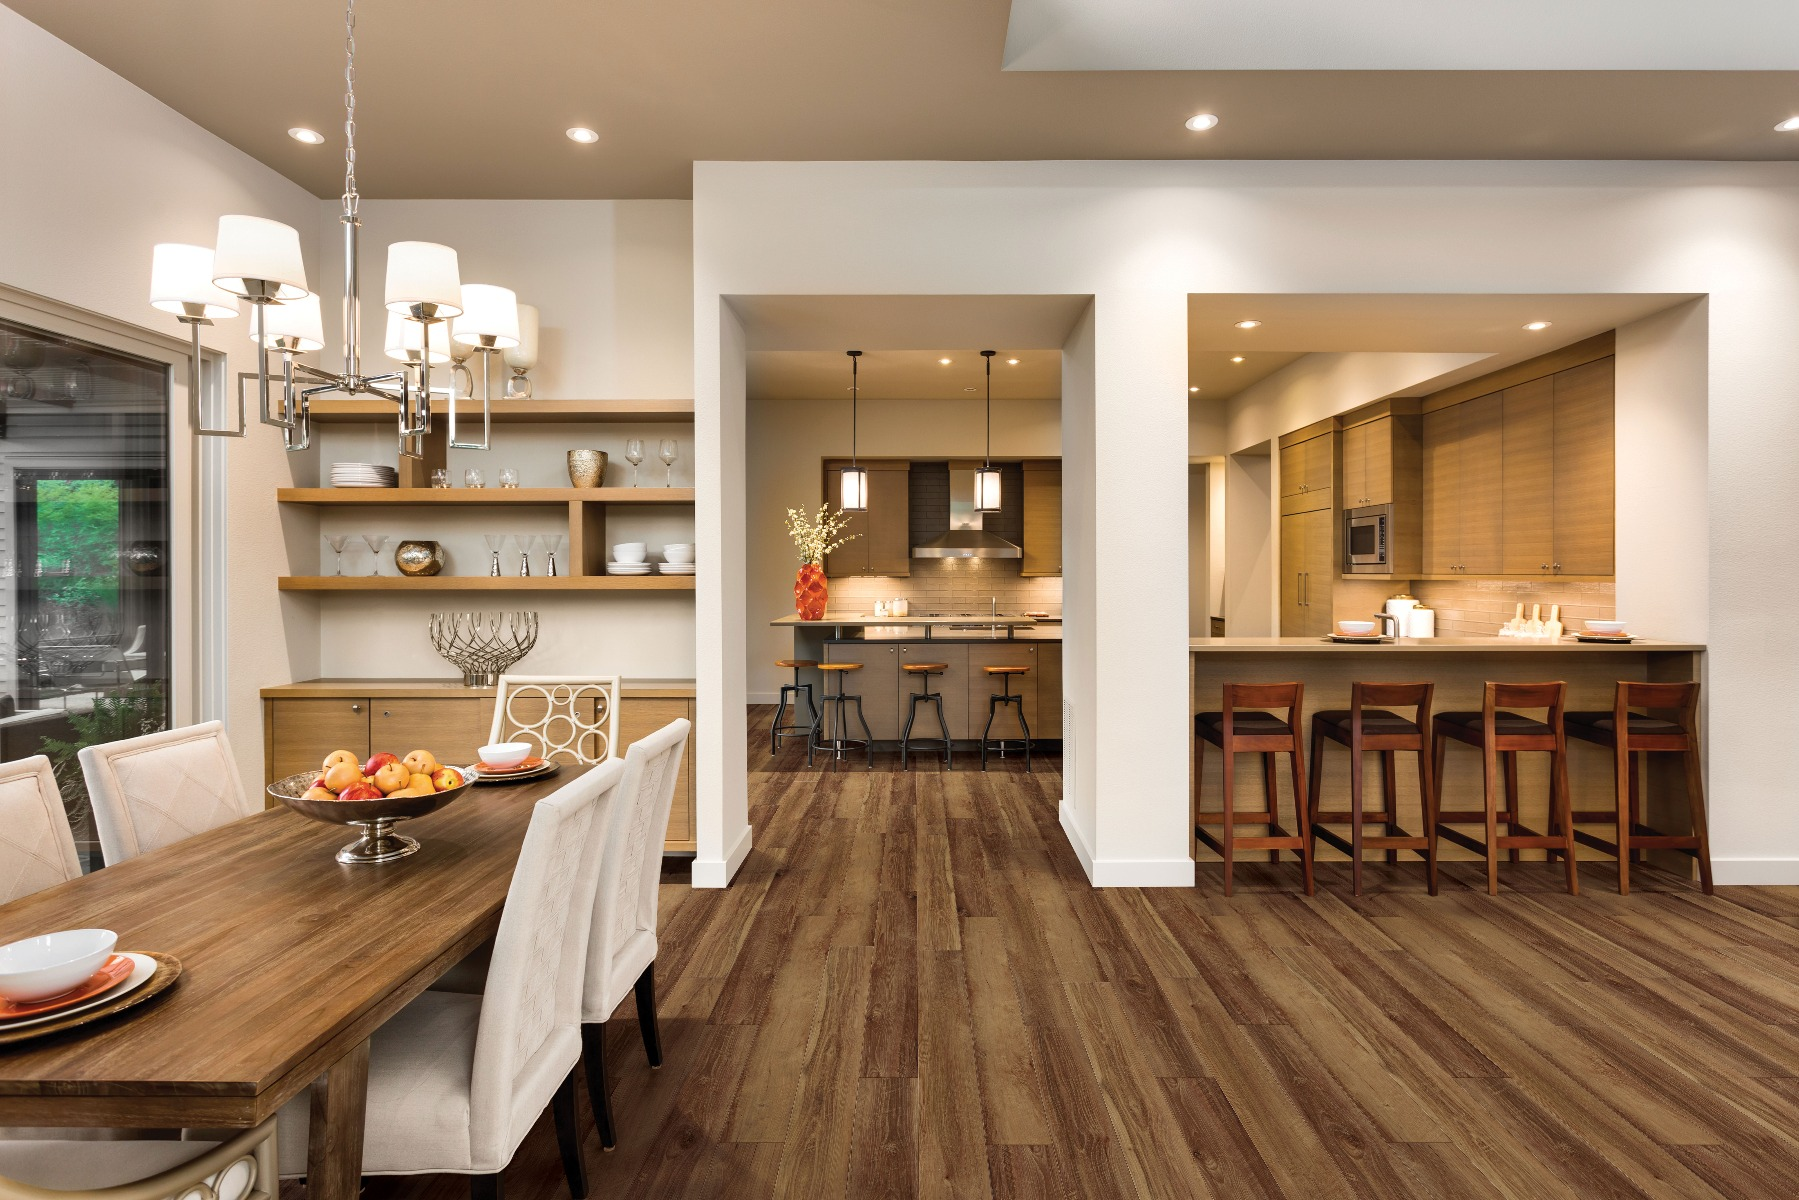 Mornington Oak floor by USFloors® from the COREtec Plus Enhanced Plank collection | SKU:50LVPE762